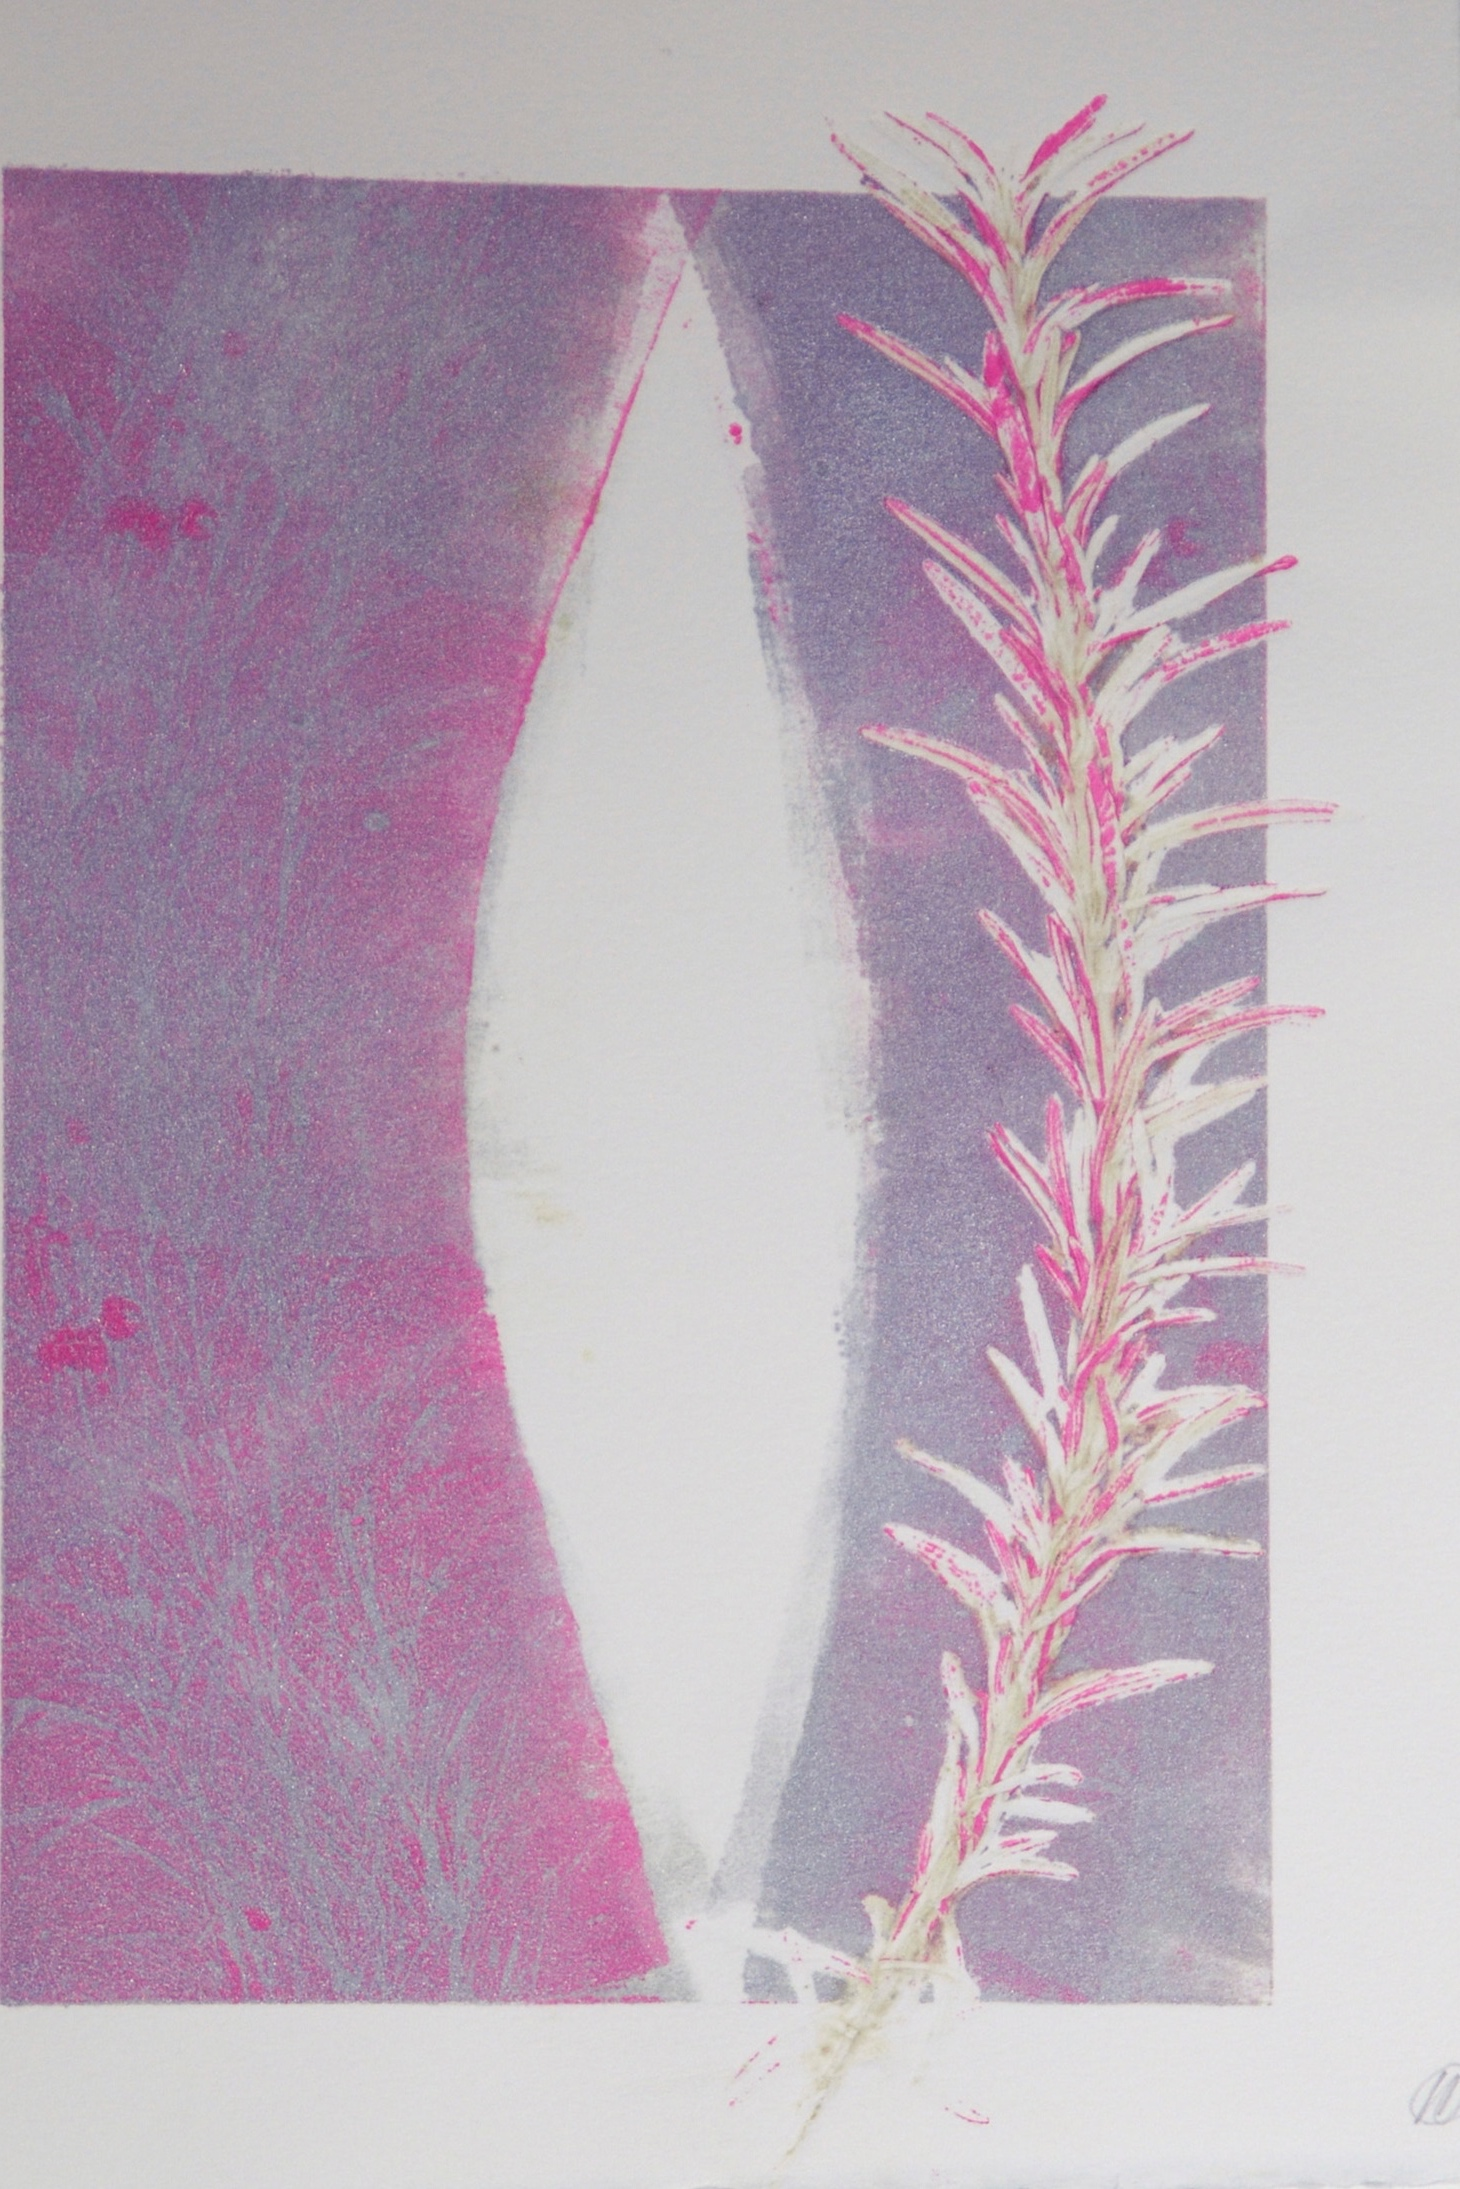 rosemary tannin with silver and pink in on paper, letterpress